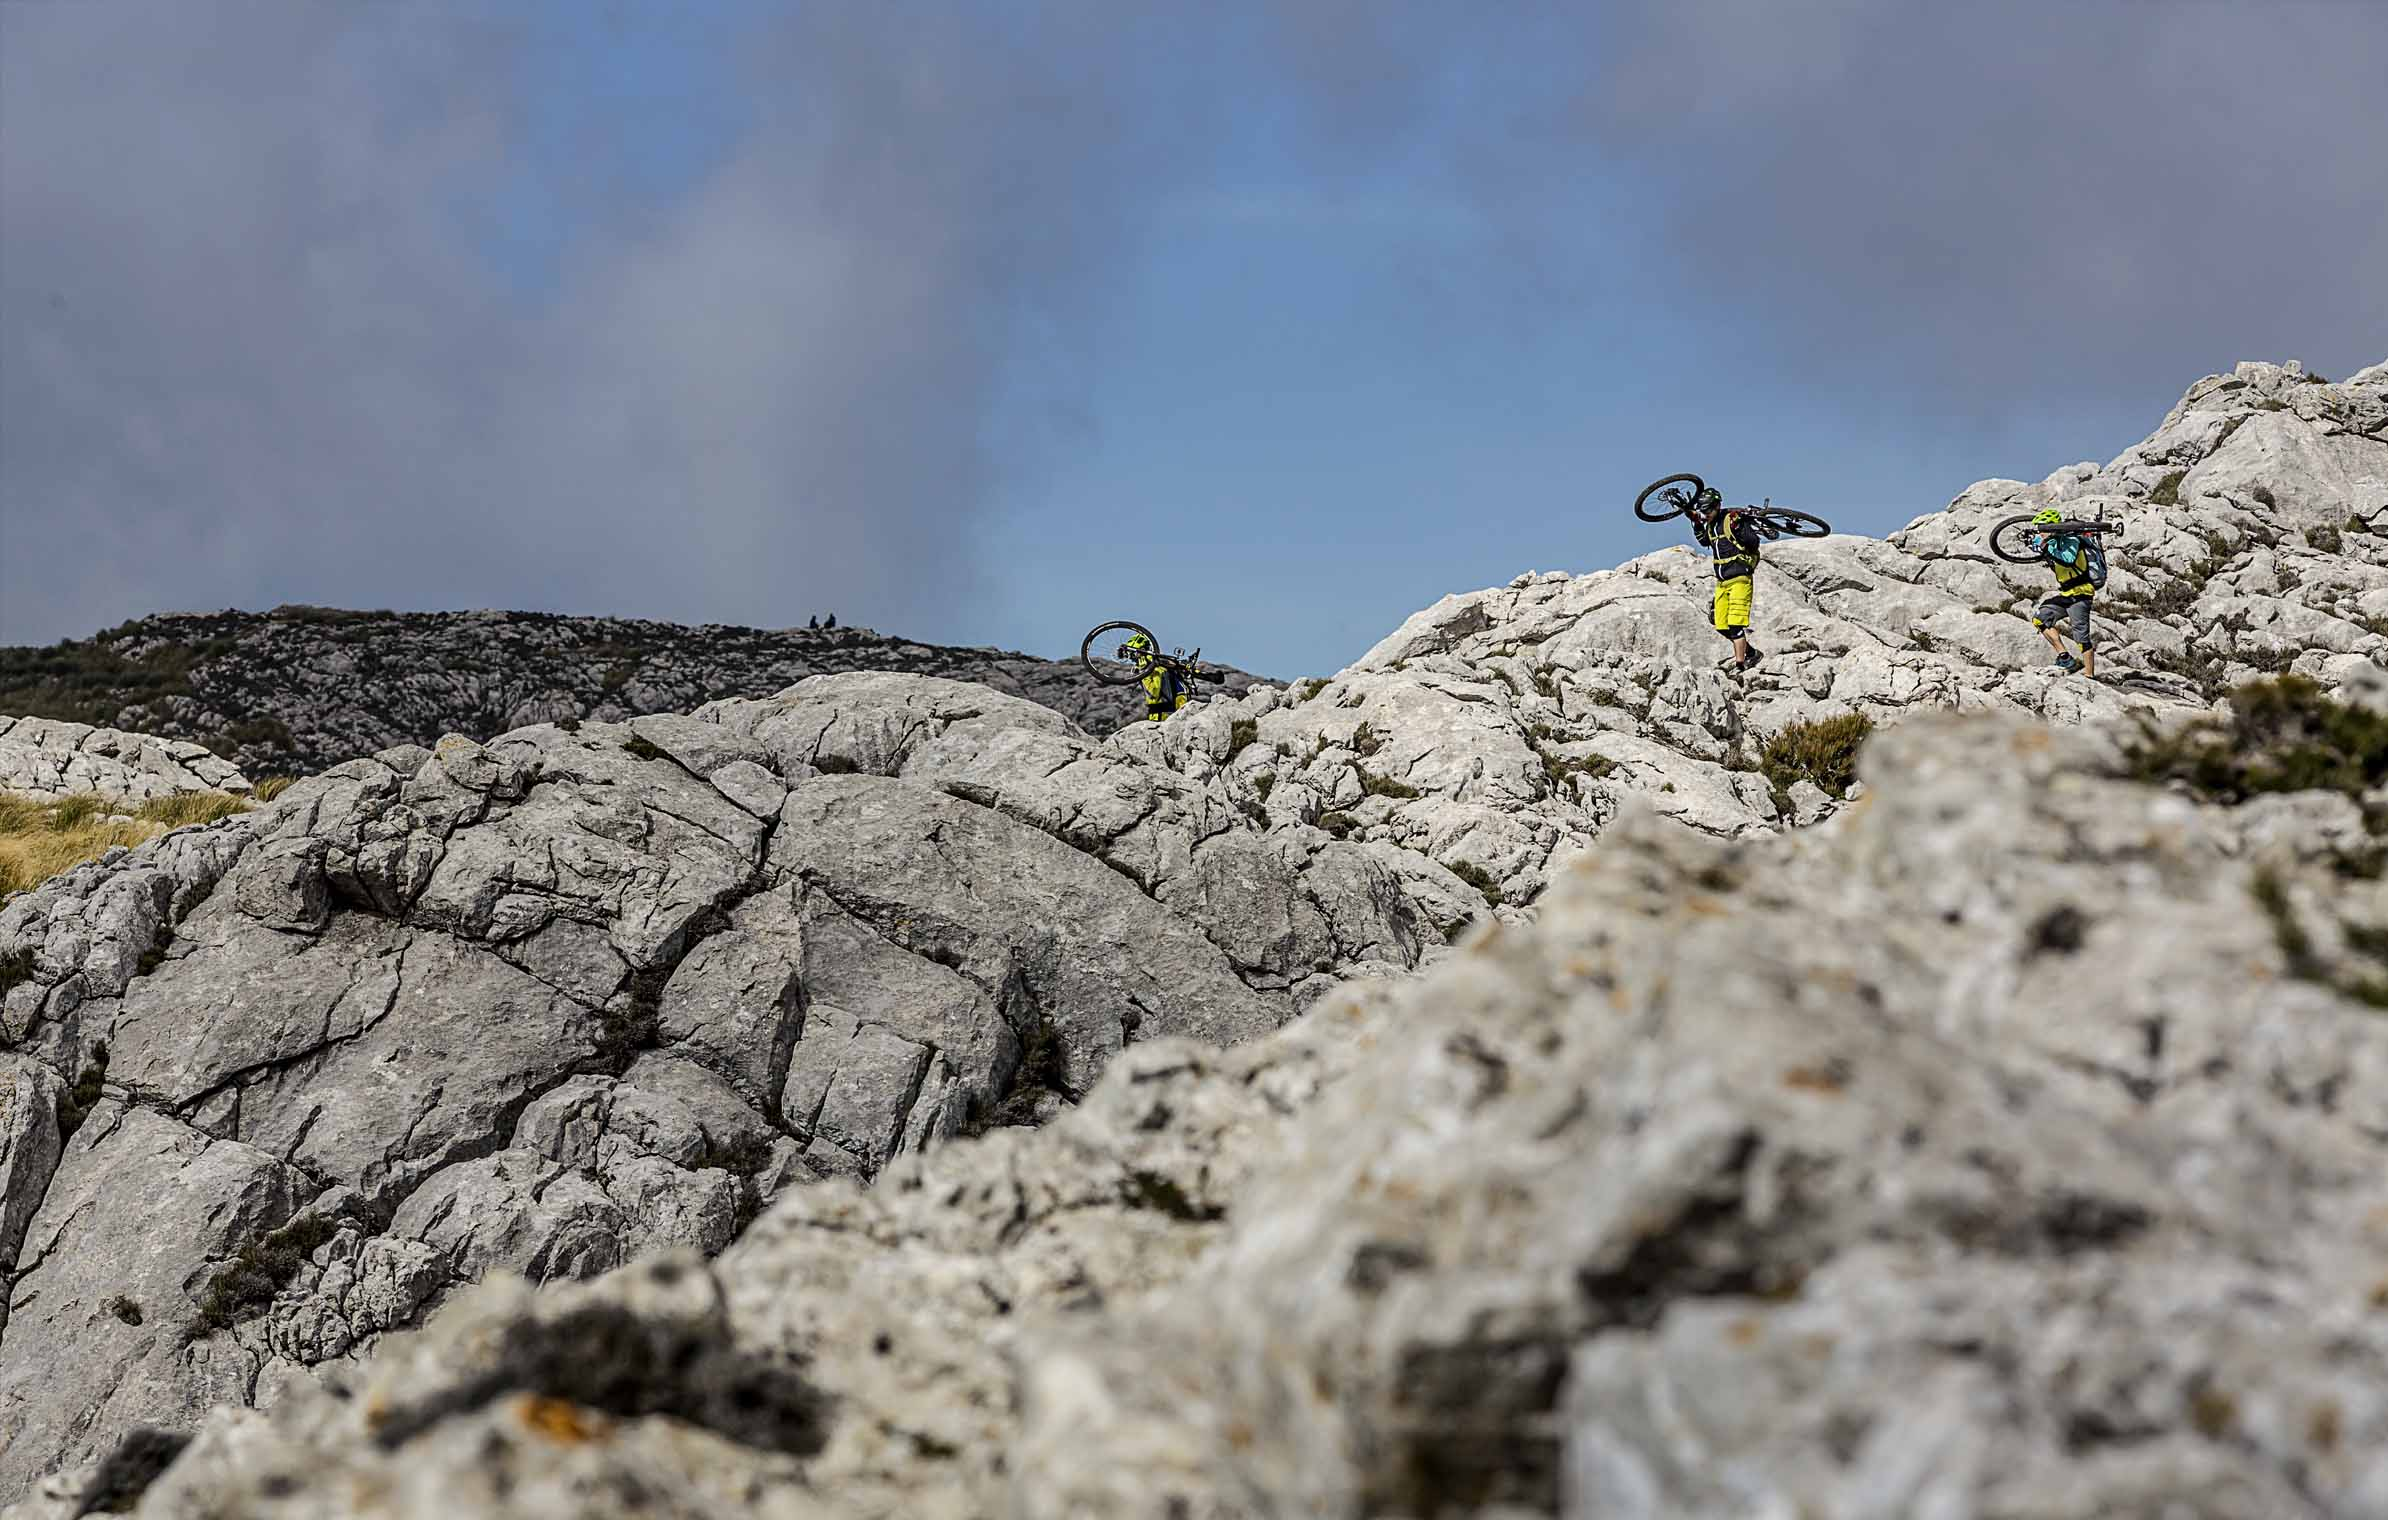 into_the_wild_bike_mountain_adventure_mallorca_michi_perkonigg_berg_schauer